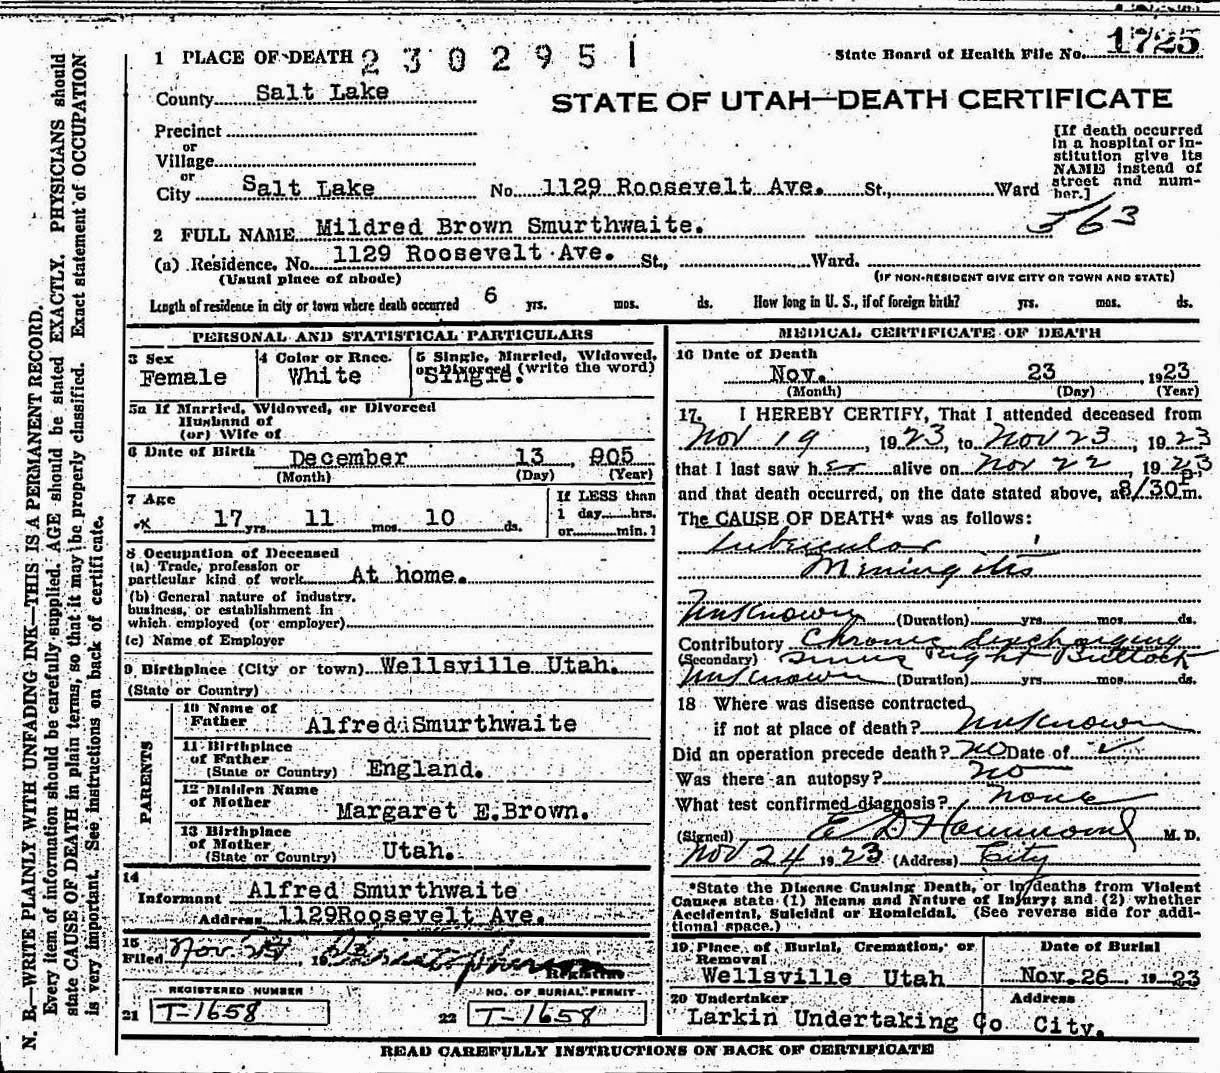 Family histories smurthwaite mildred brown 1905 1923 mother margaret e brown b utah death 23 nov 1923 salt lake city salt lake utah cause of death tubercular meningitis 1betcityfo Choice Image